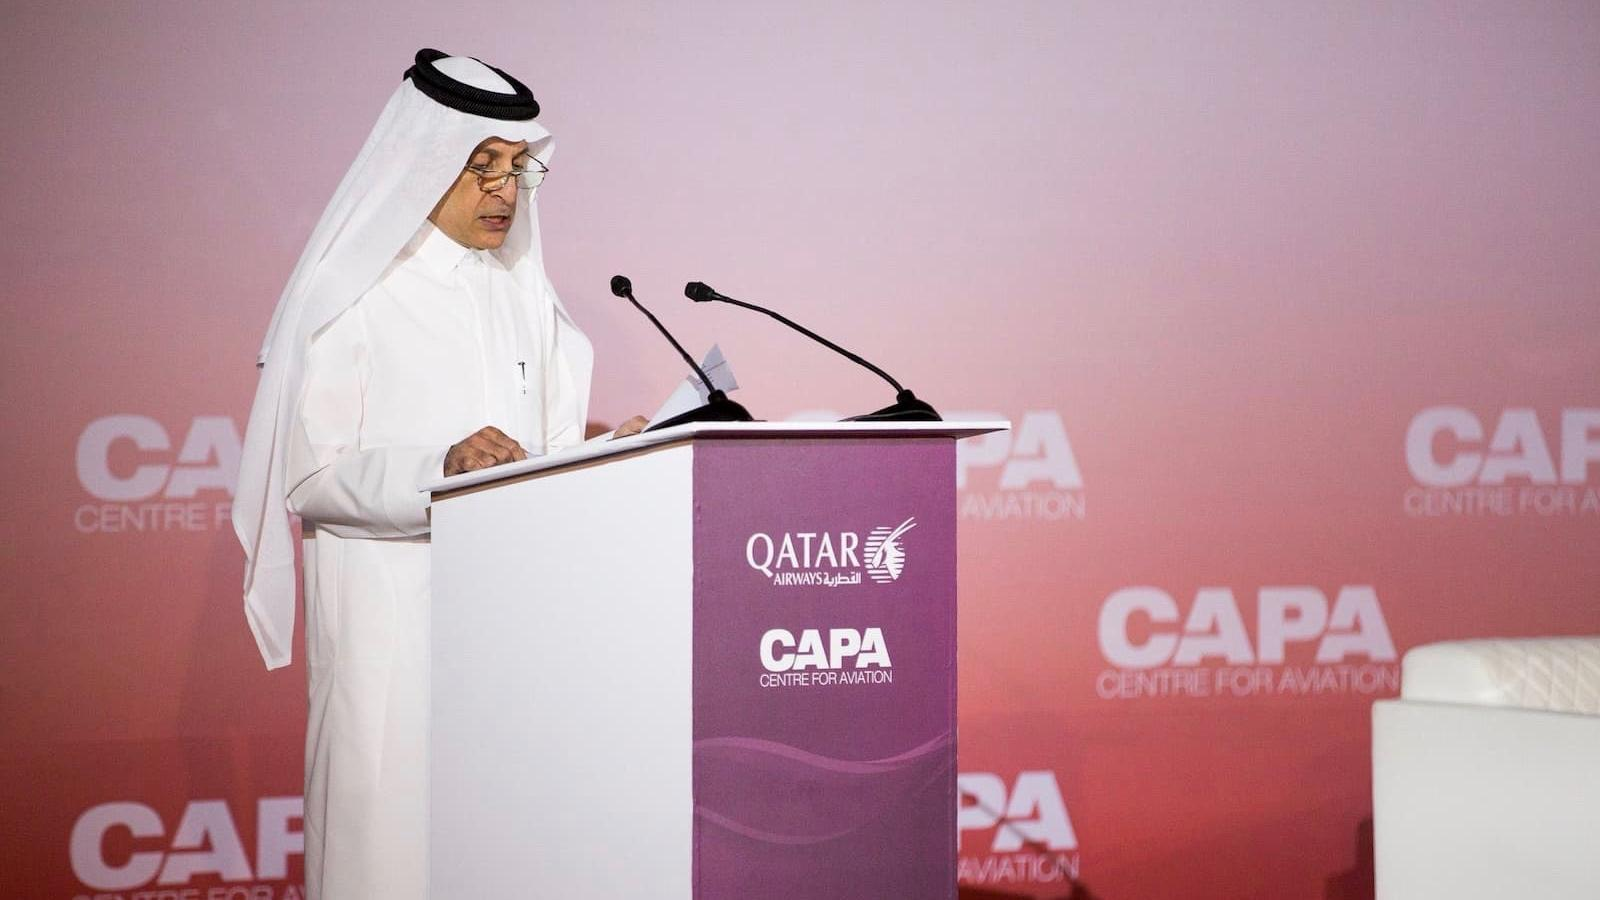 Qatar Airways to take delivery of 40 planes this year: HE Al Baker